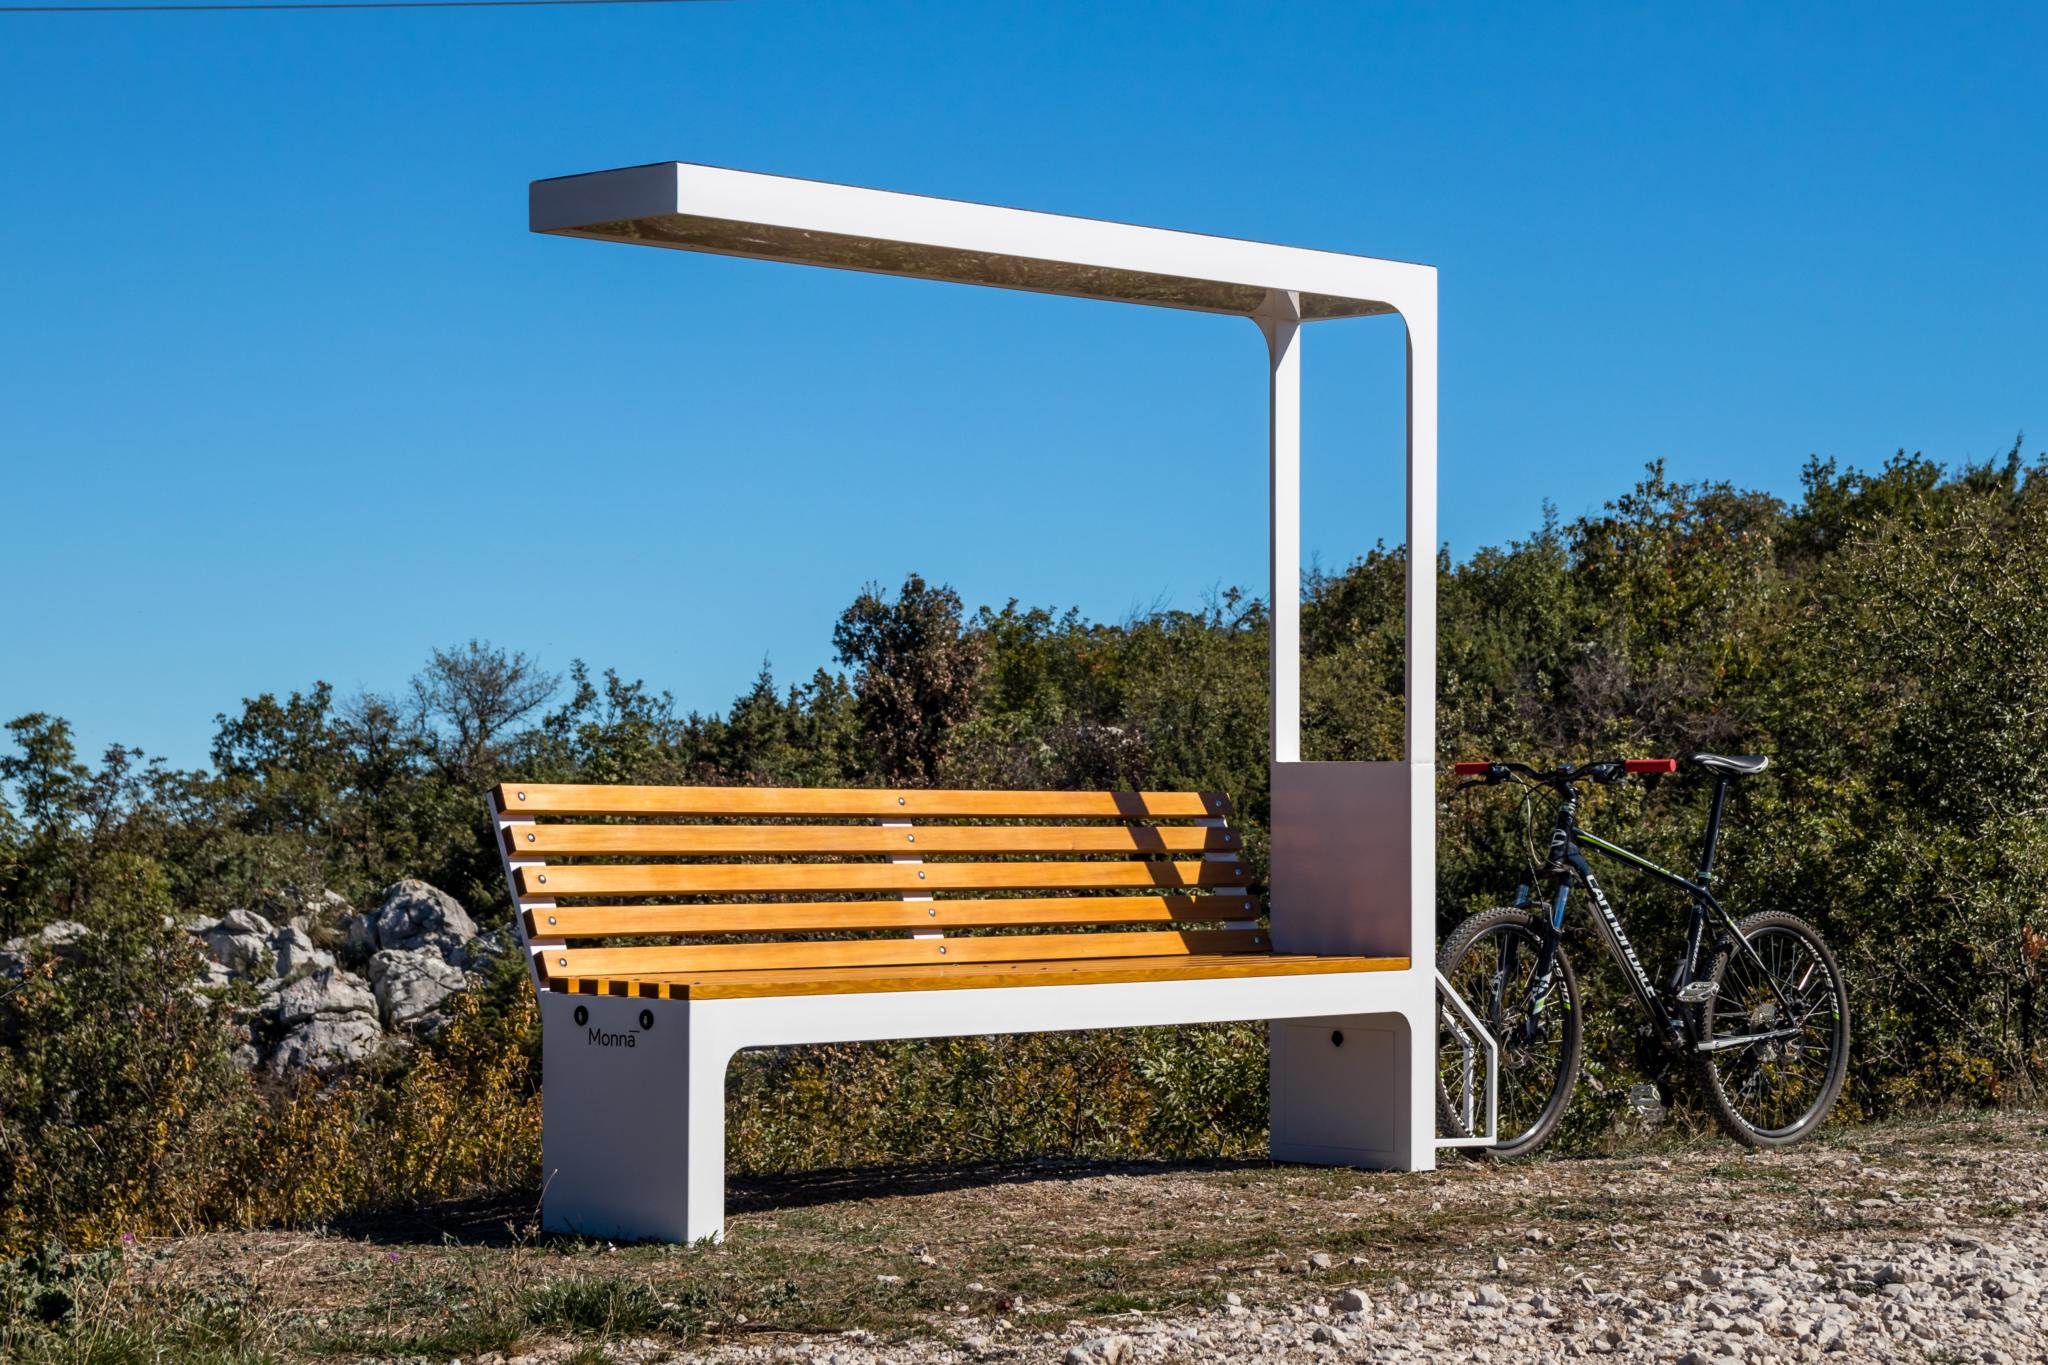 The Include Monna smart cycling point with wireless charger for rural areas